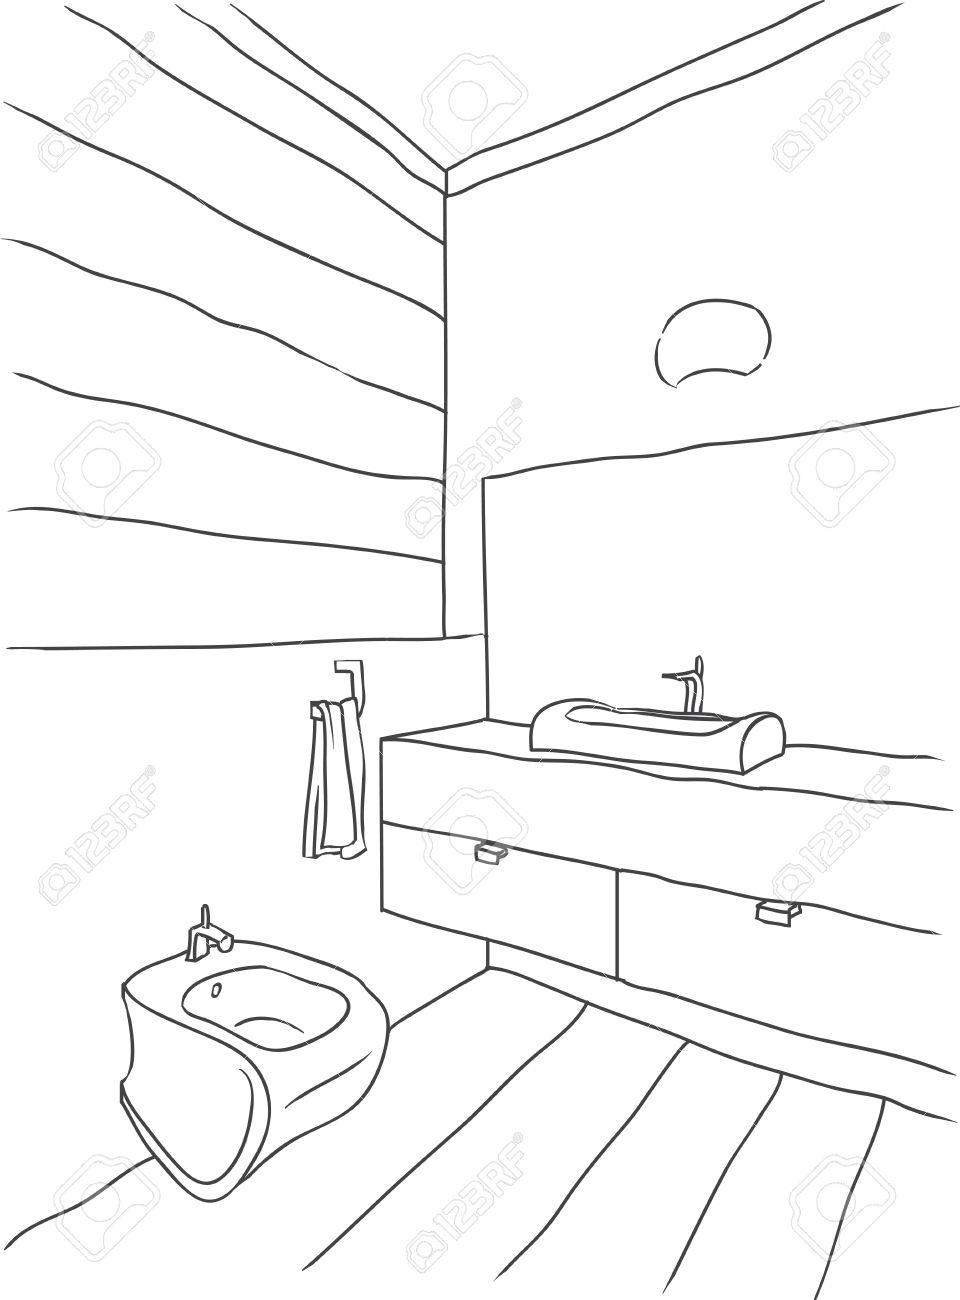 Bathroom drawing - Contour Drawing Of Bathroom Interior Modern Style Stock Vector 41773688